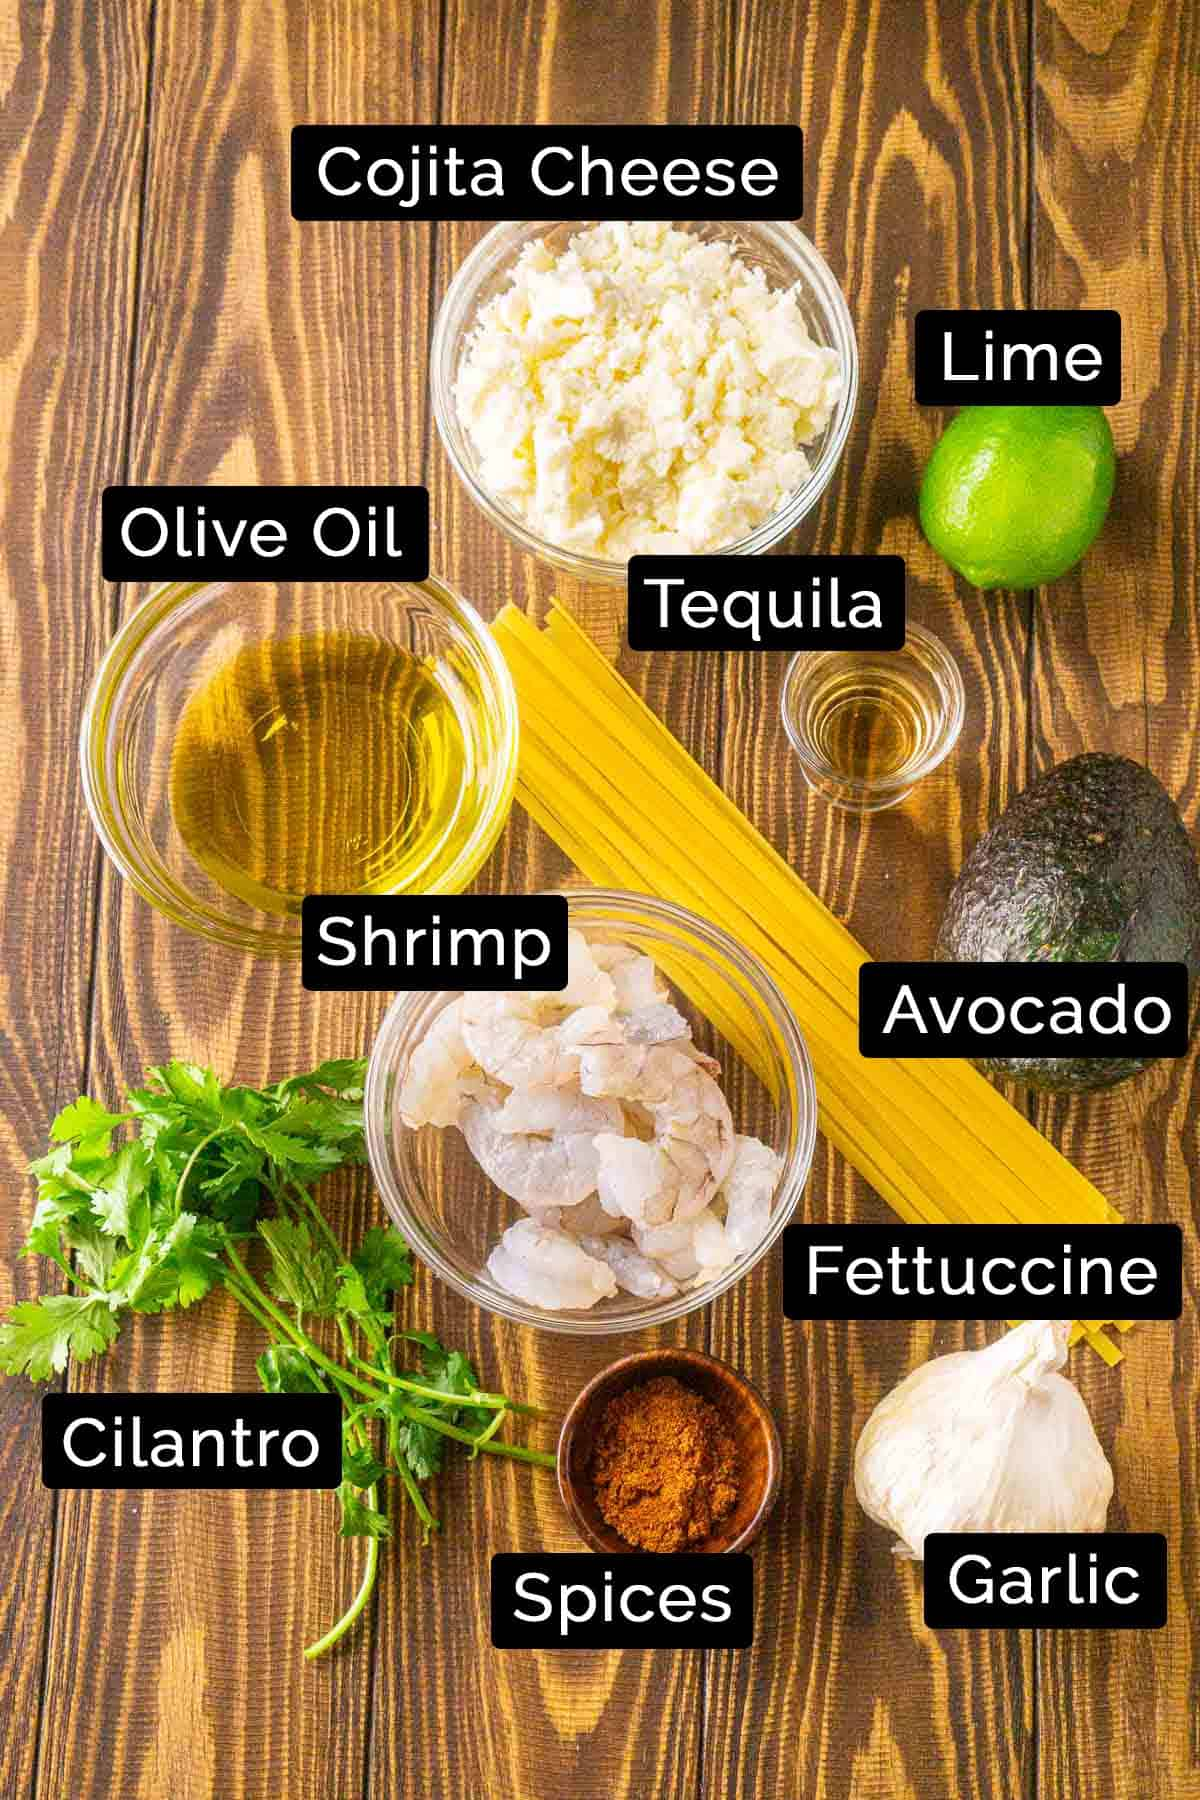 The spicy avocado pasta ingredients with black and white labels on a wooden board.